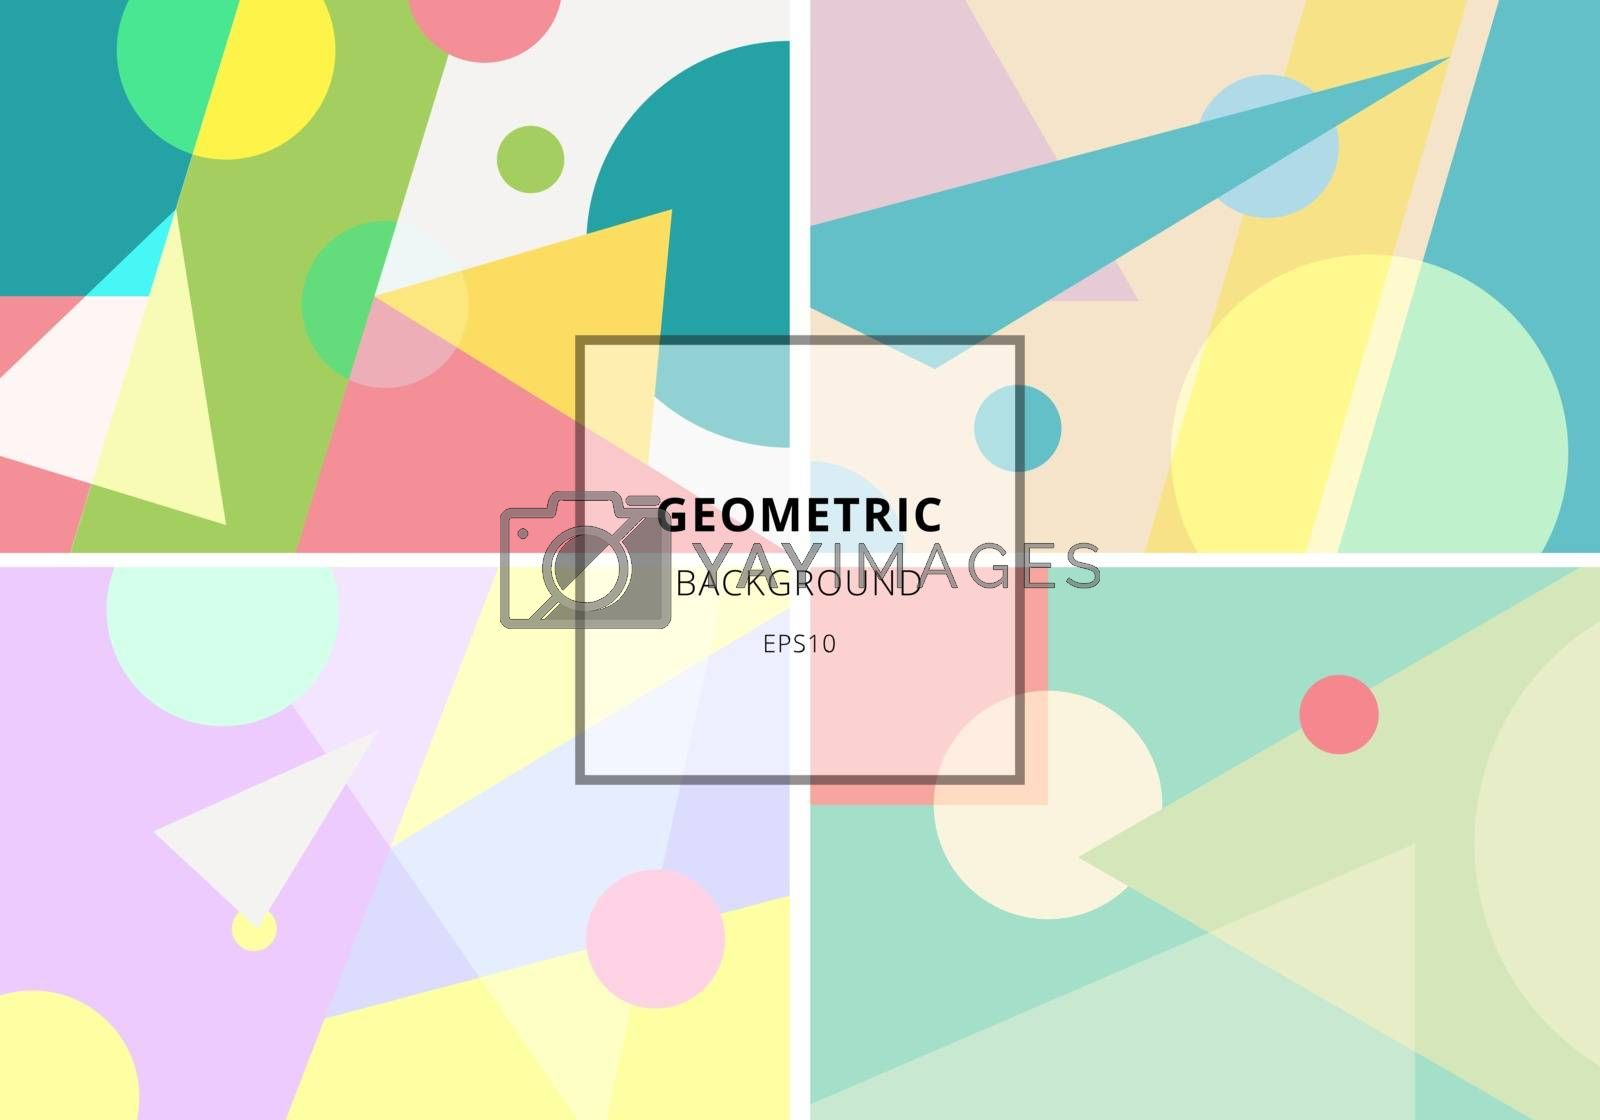 Set of trendy geometric elements retro style texture pattern. Modern abstract design poster, cover, card, invitation, brochure, etc. Vector illustration